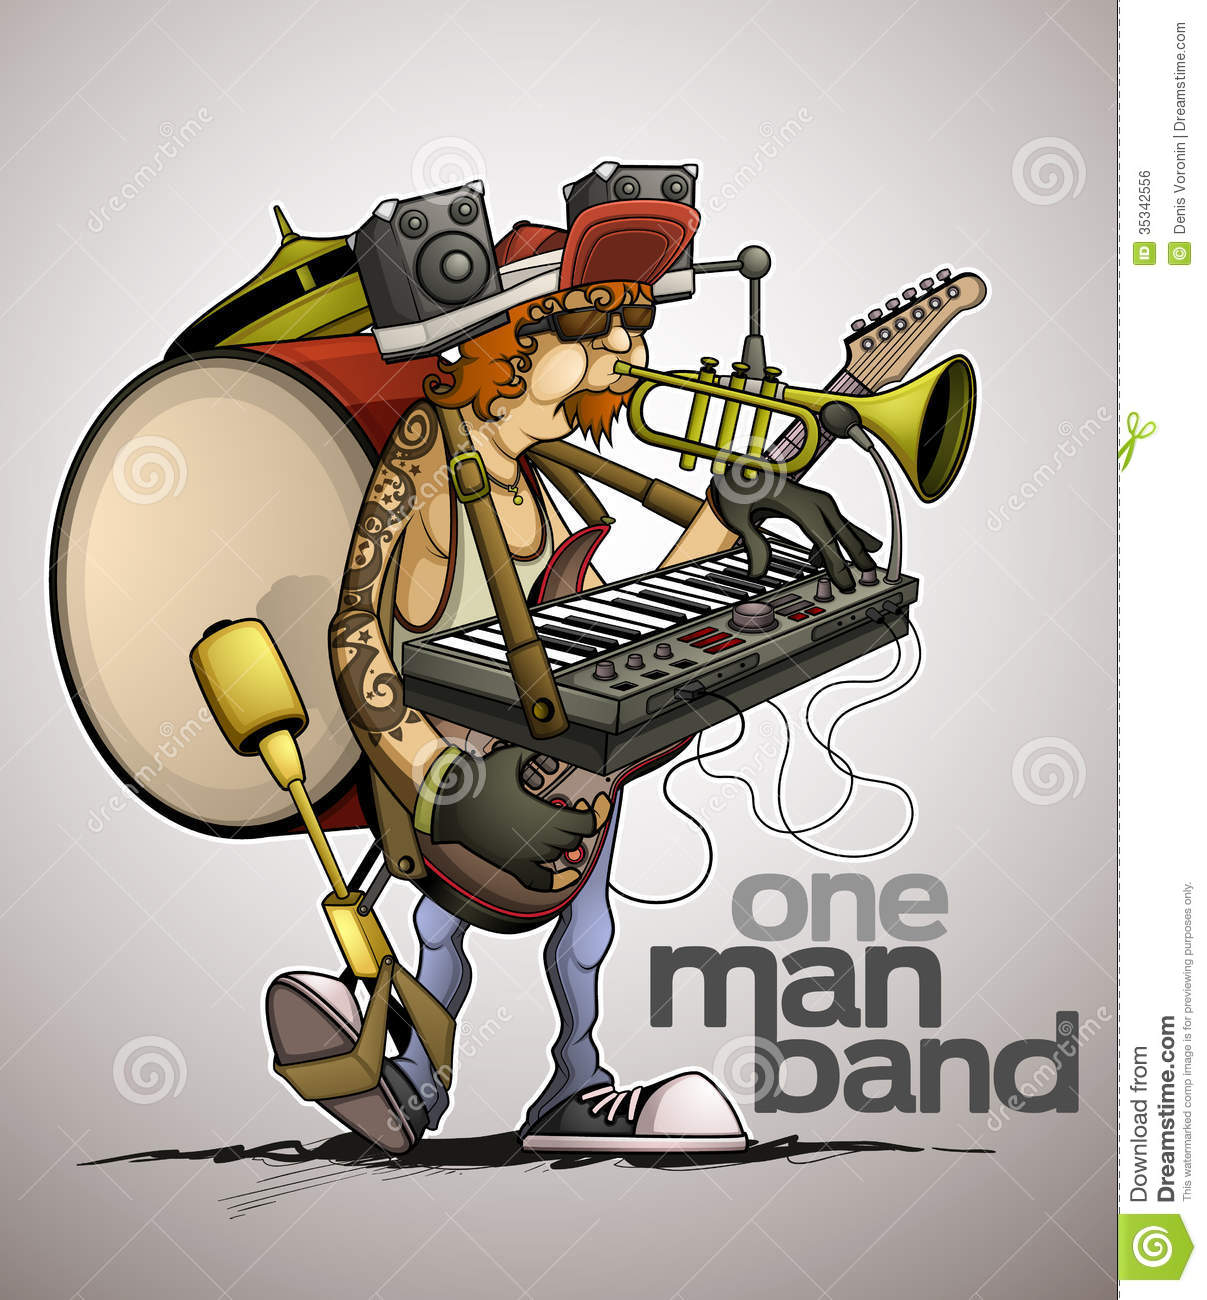 One Man Song Download By Singa: Modern One Man Band Royalty Free Stock Image